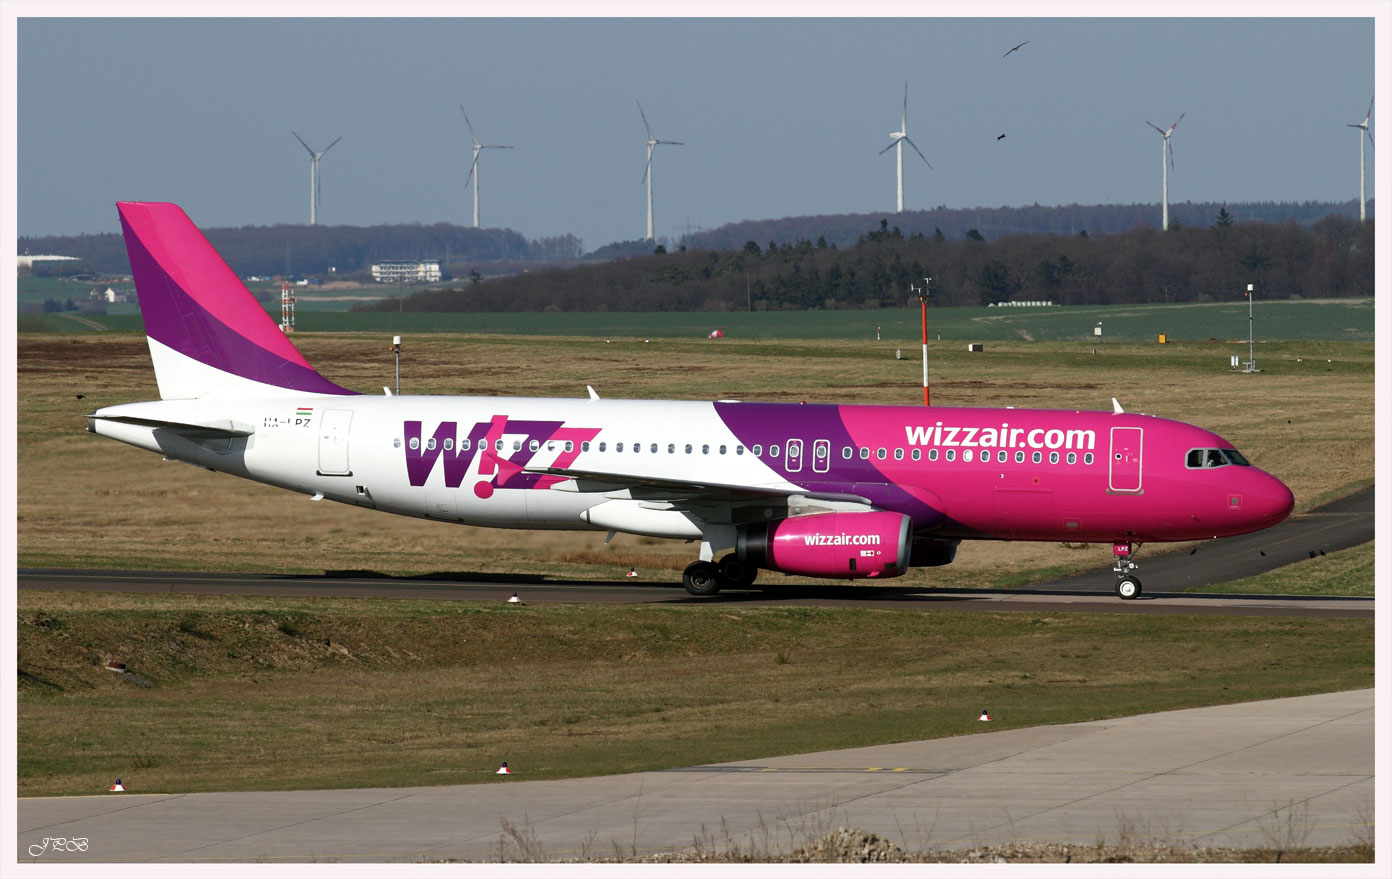 Wizz Air Hungary Airbus A320-200